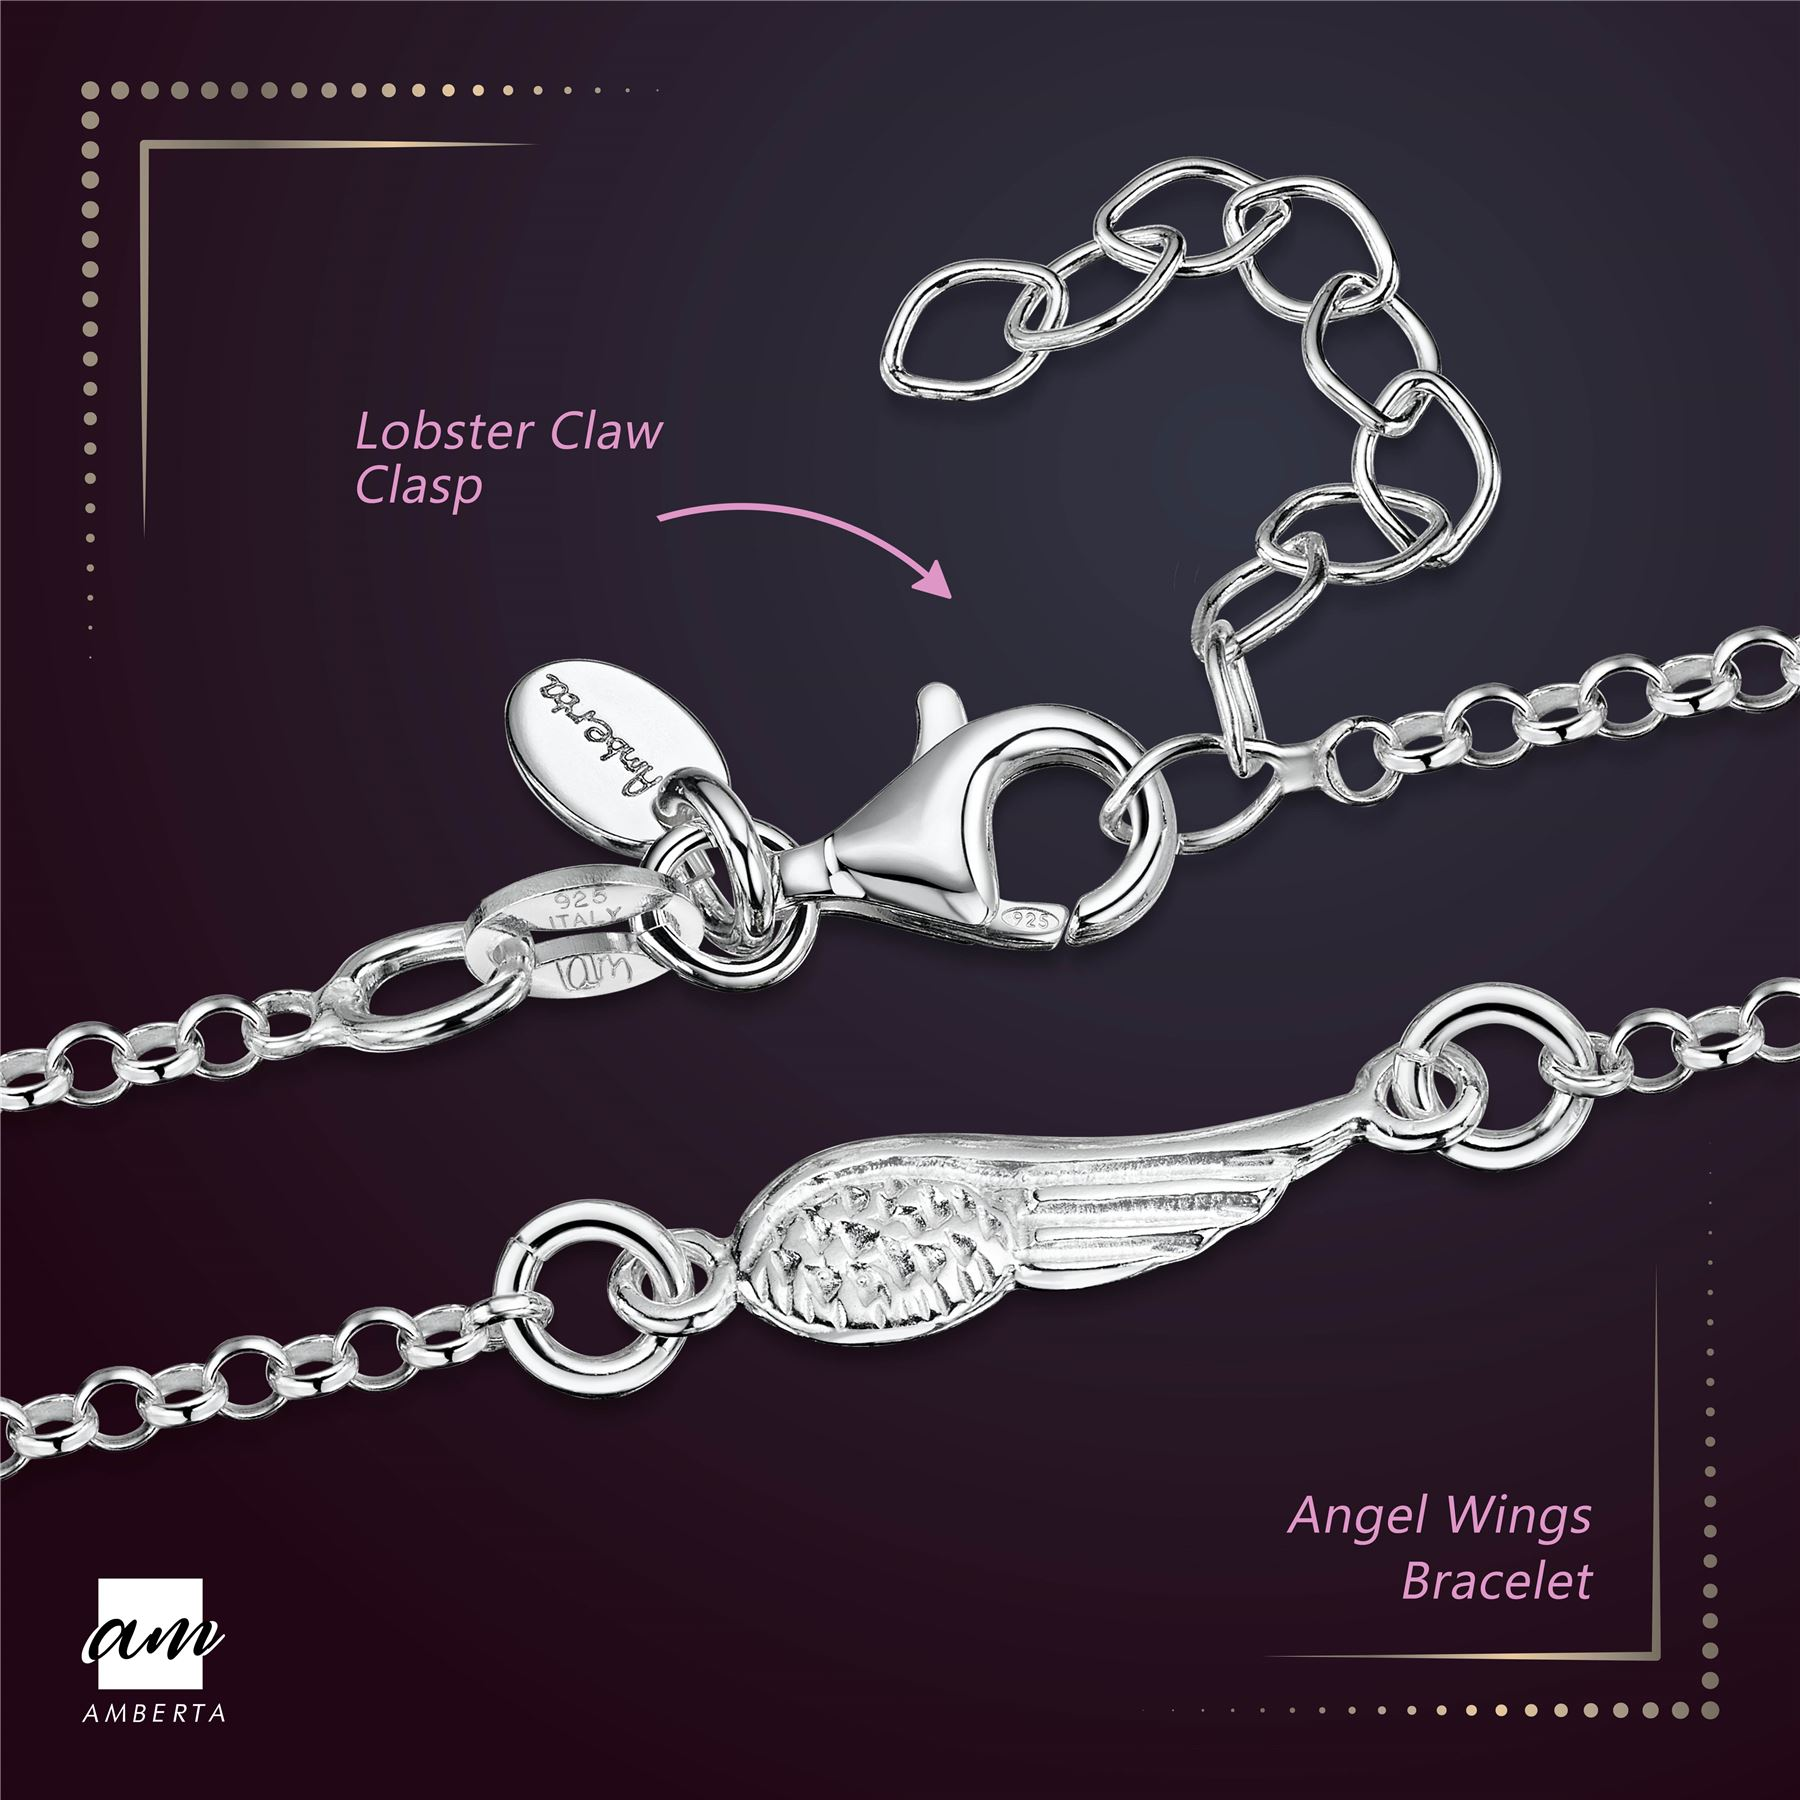 Amberta-925-Sterling-Silver-Adjustable-Rolo-Chain-Bracelet-with-Charms-for-Women miniature 4